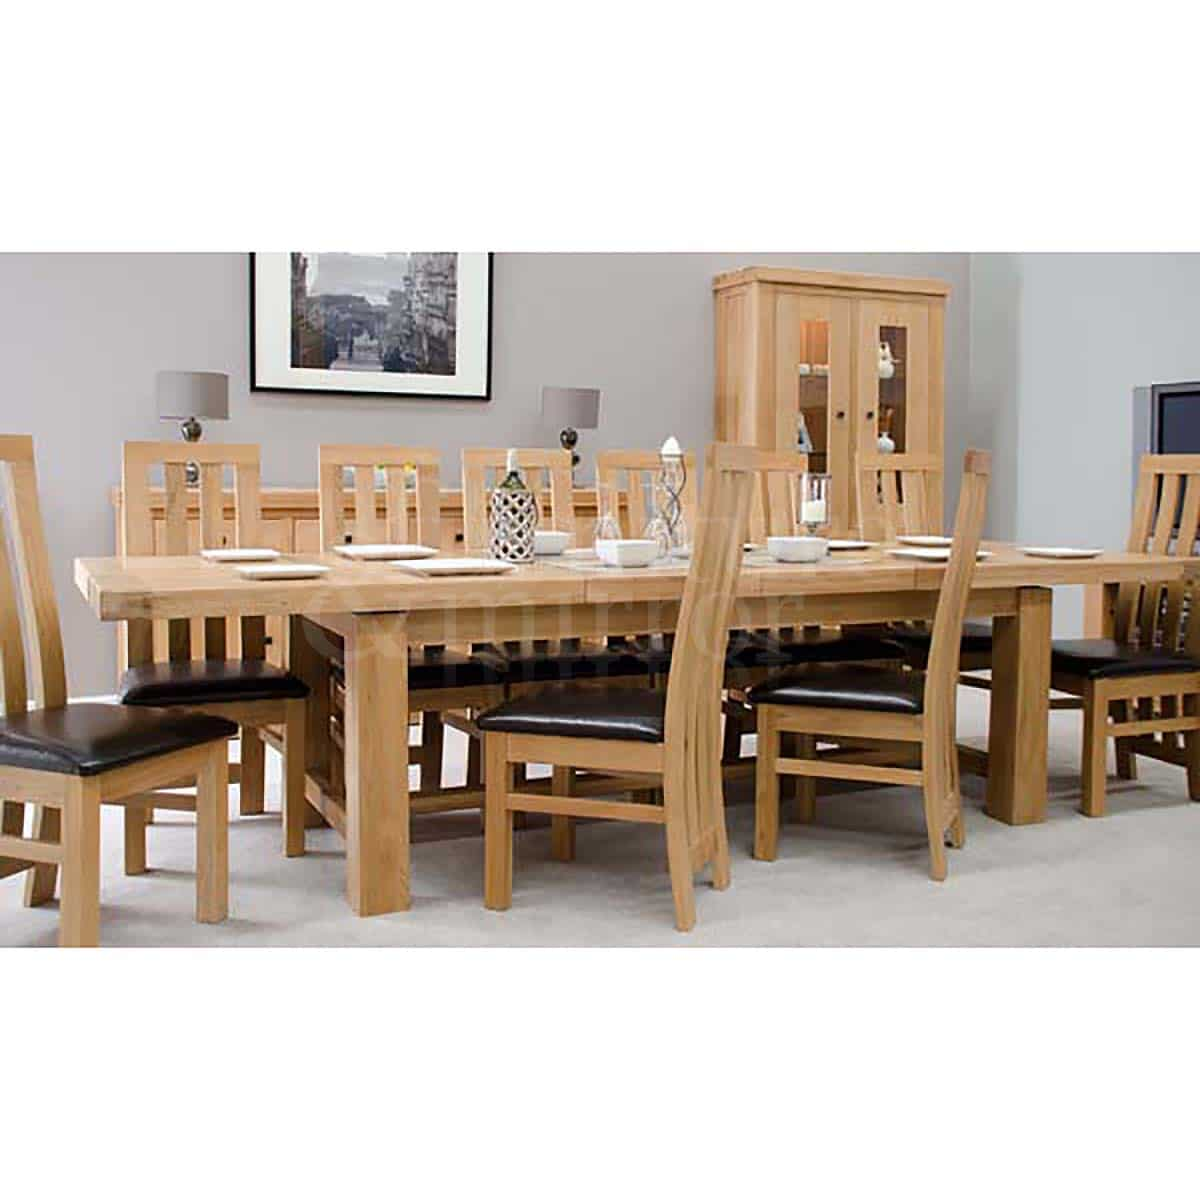 Chunky 14 Seater Dining Table